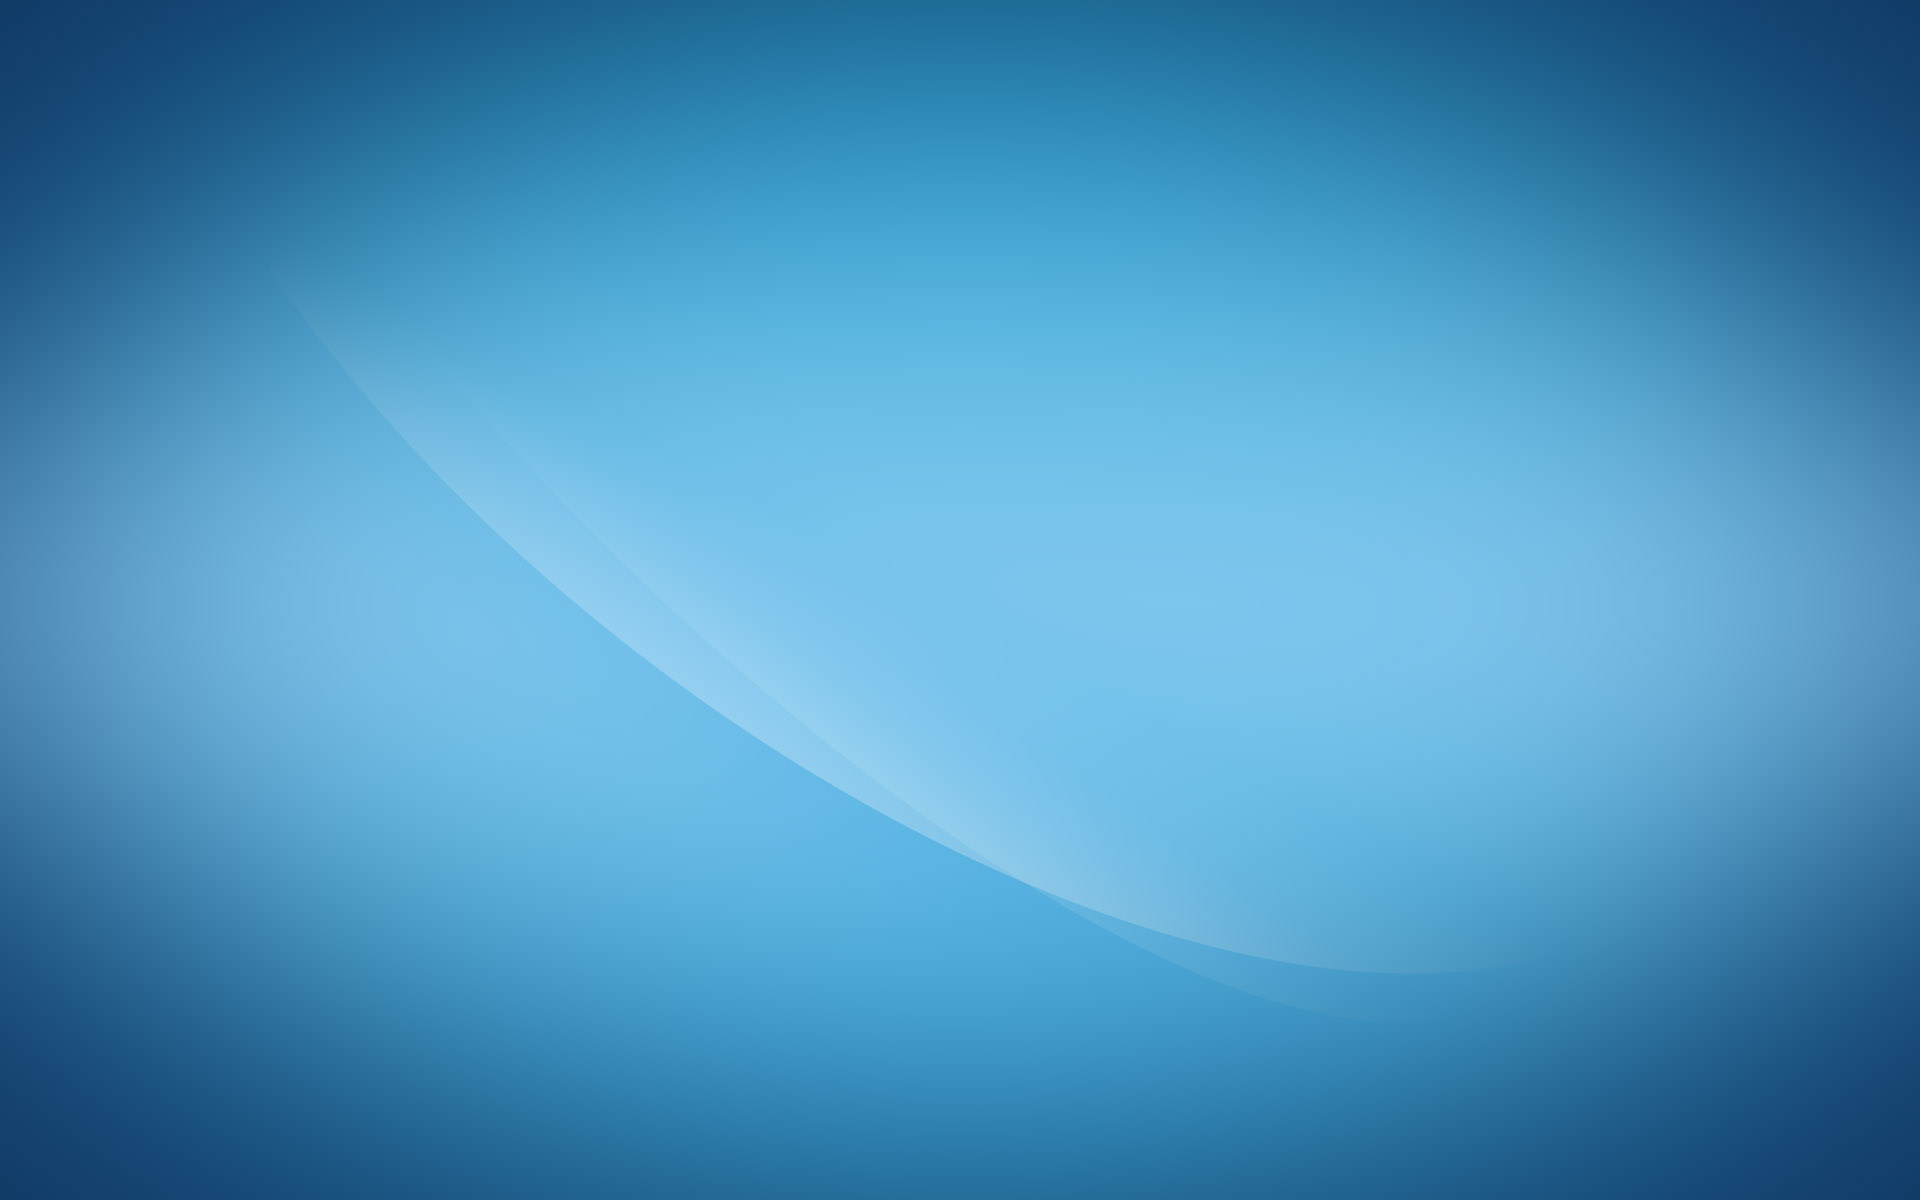 HD color background wallpaper 18576